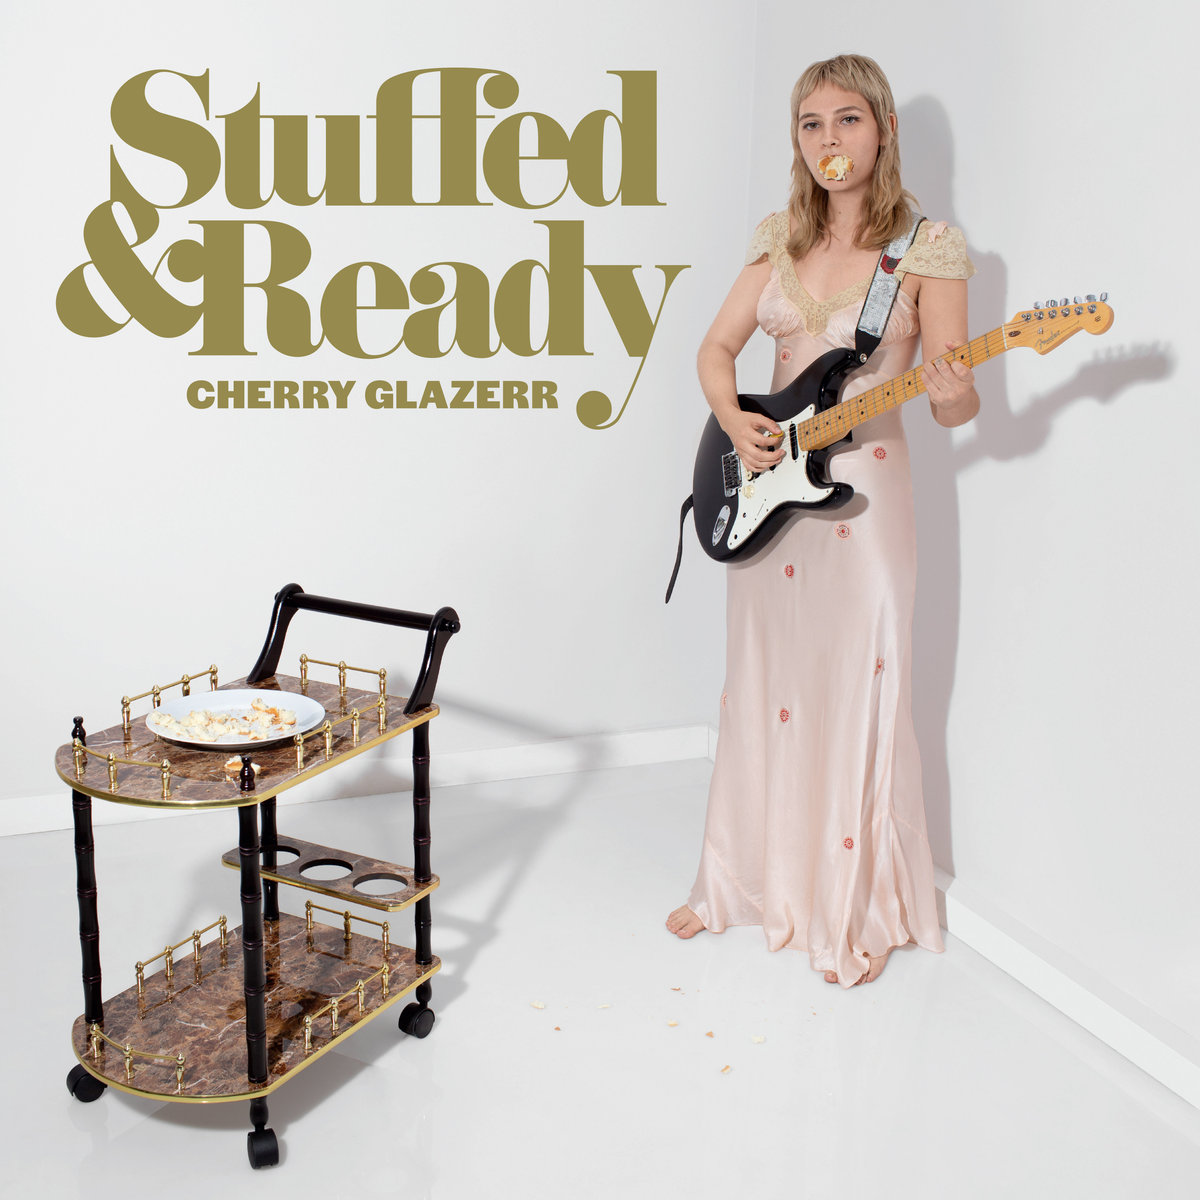 Cherry Glazerr, Stuffed & Ready - This indie rock leaves you fatigued in a daze of punky dream pop. Exasperated vocals sing fuming lyrics about going through the motions. The instrumentals lash out. Twinkling synth, reckless drums and sludgy guitar wear a promising pout.